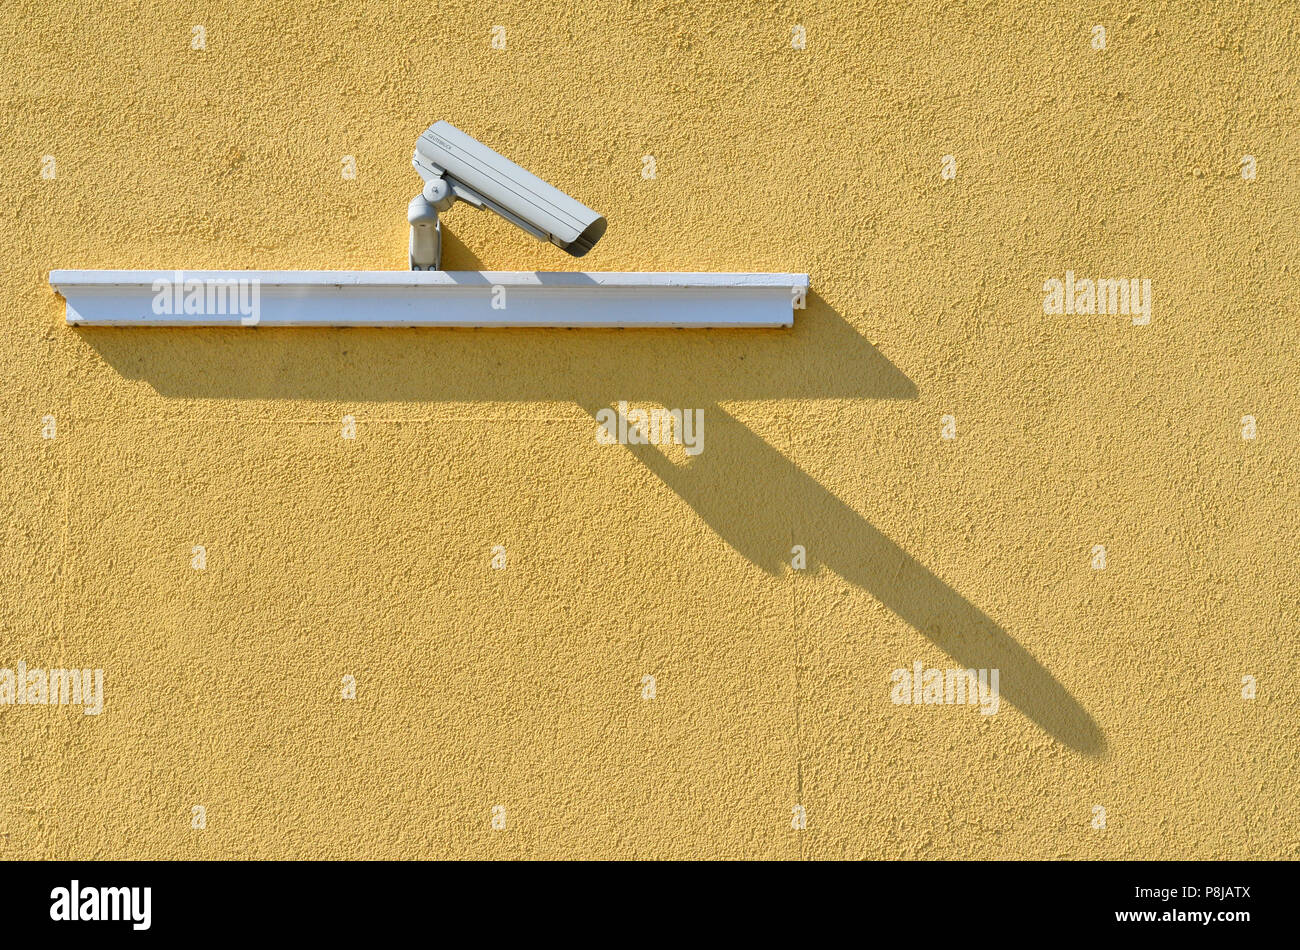 surveillance camera with shadow mounted on a yellow wall and looks down. Brother is watching you. - Stock Image